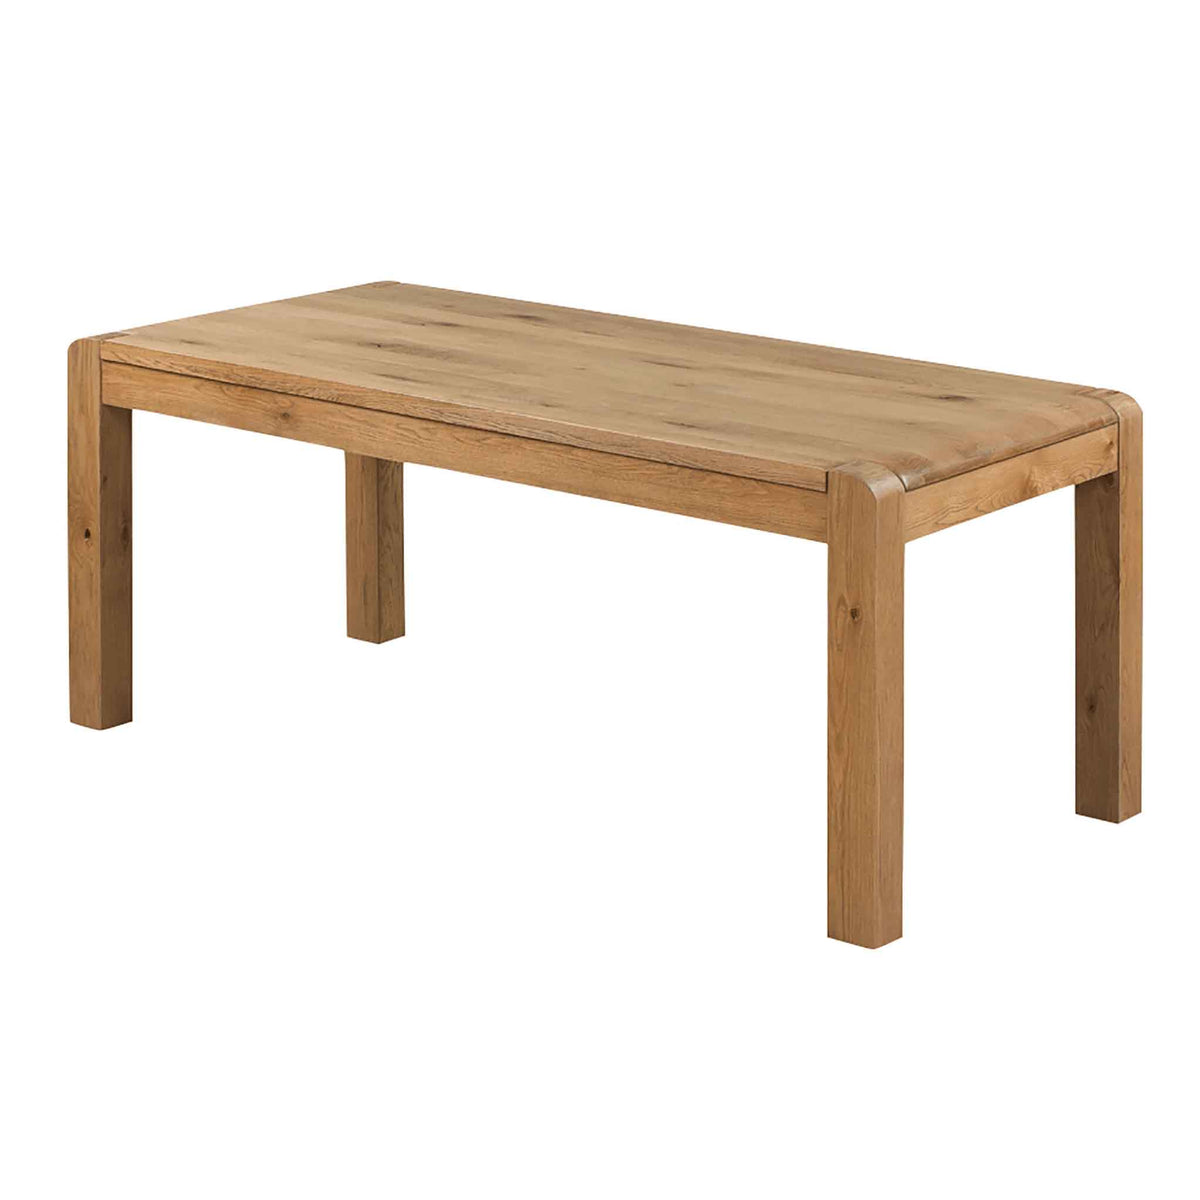 The Capri Oak Chunky Rustic 180cm Large Dining Table from Roseland Furniture